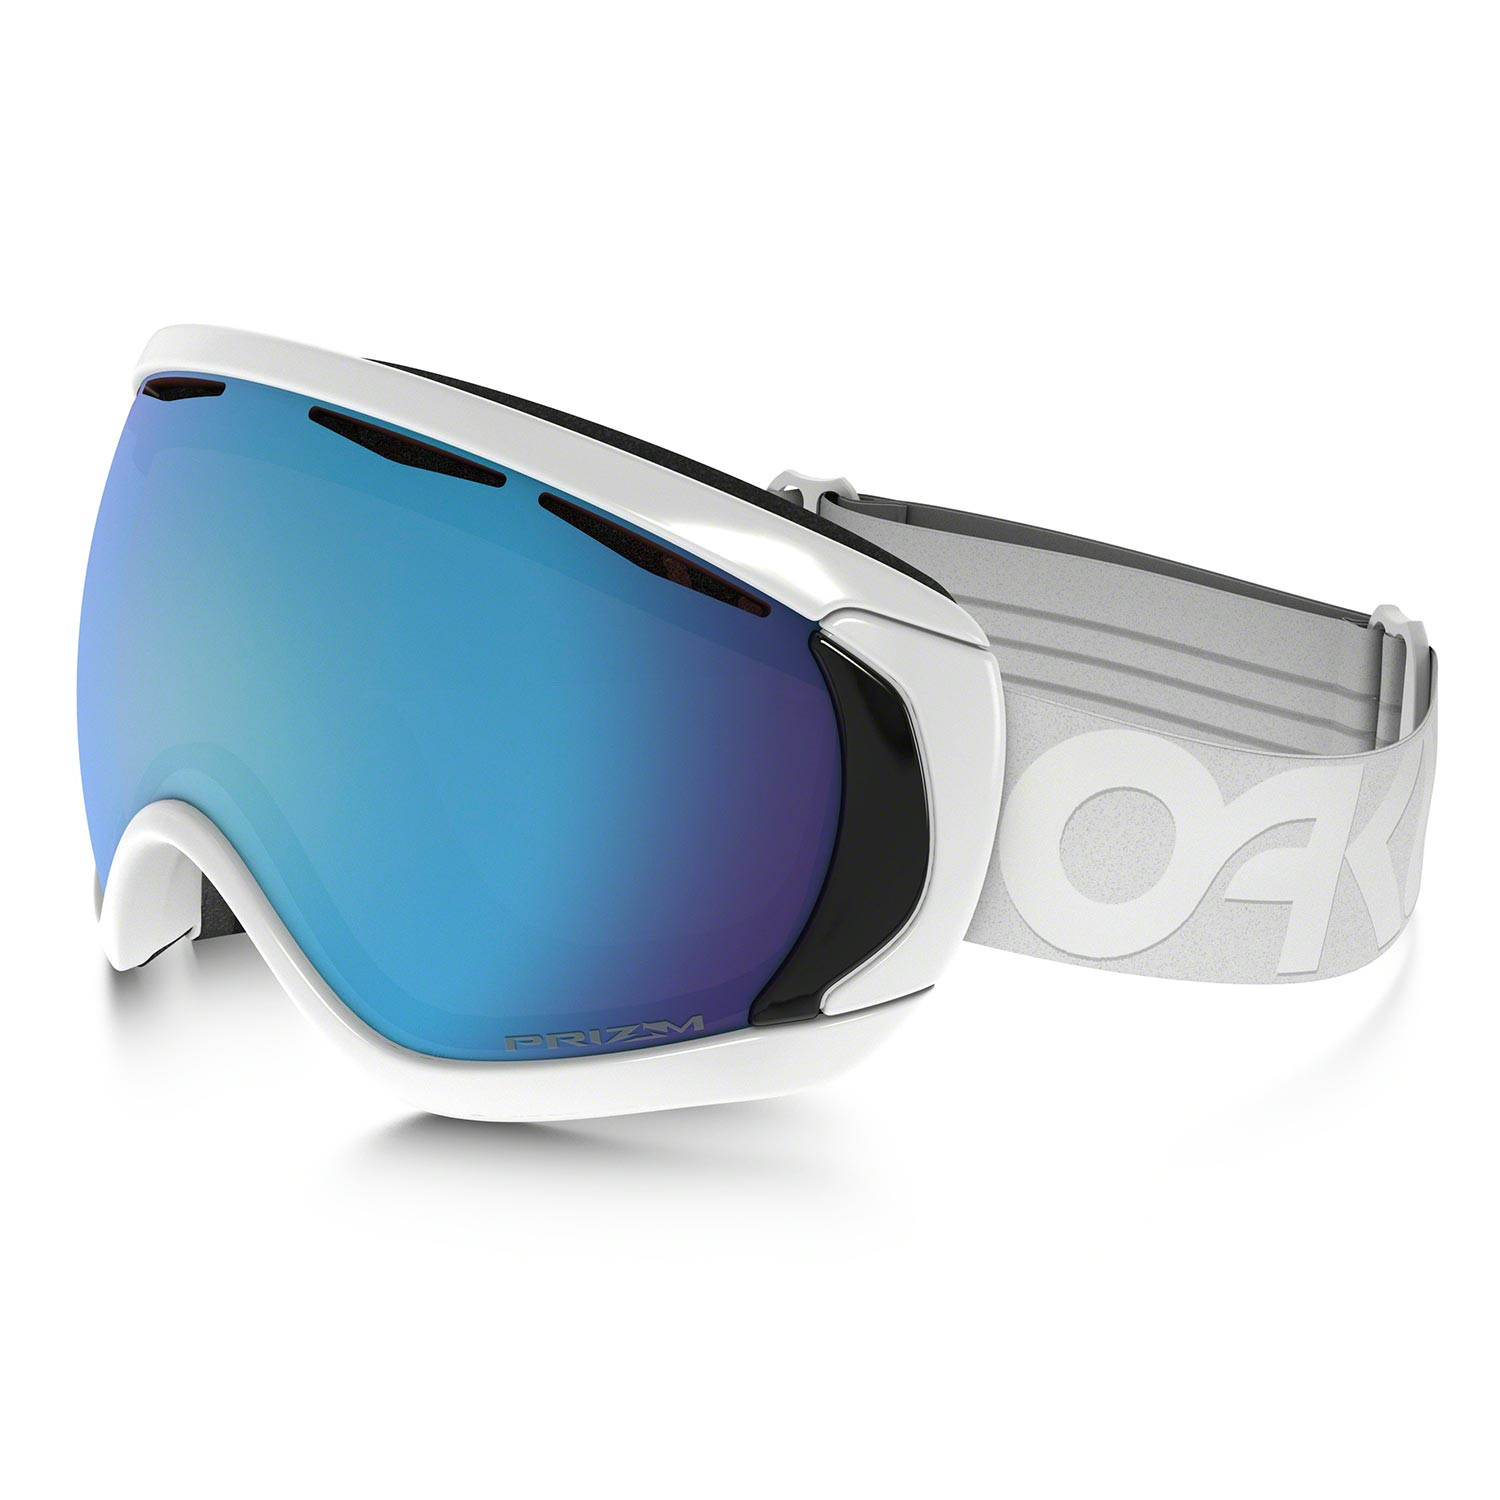 Brýle Oakley Canopy factory pilot whiteout